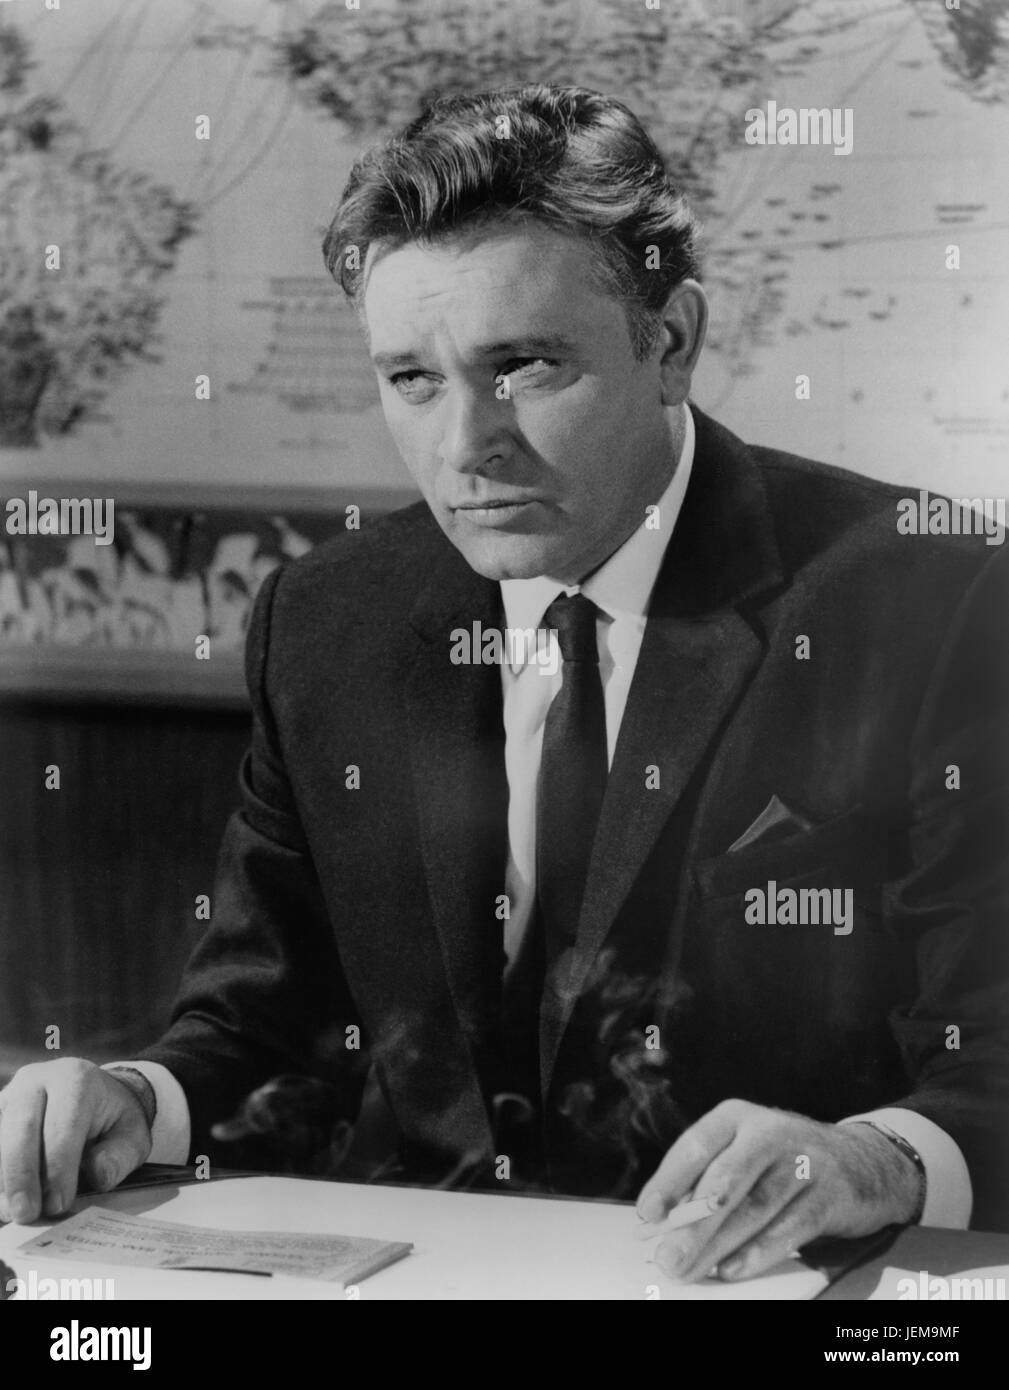 "Richard Burton, am Set des britischen Films, ""The V.I.P"" (aka Hotel International), Metro-Goldwyn-Mayer, Stockbild"